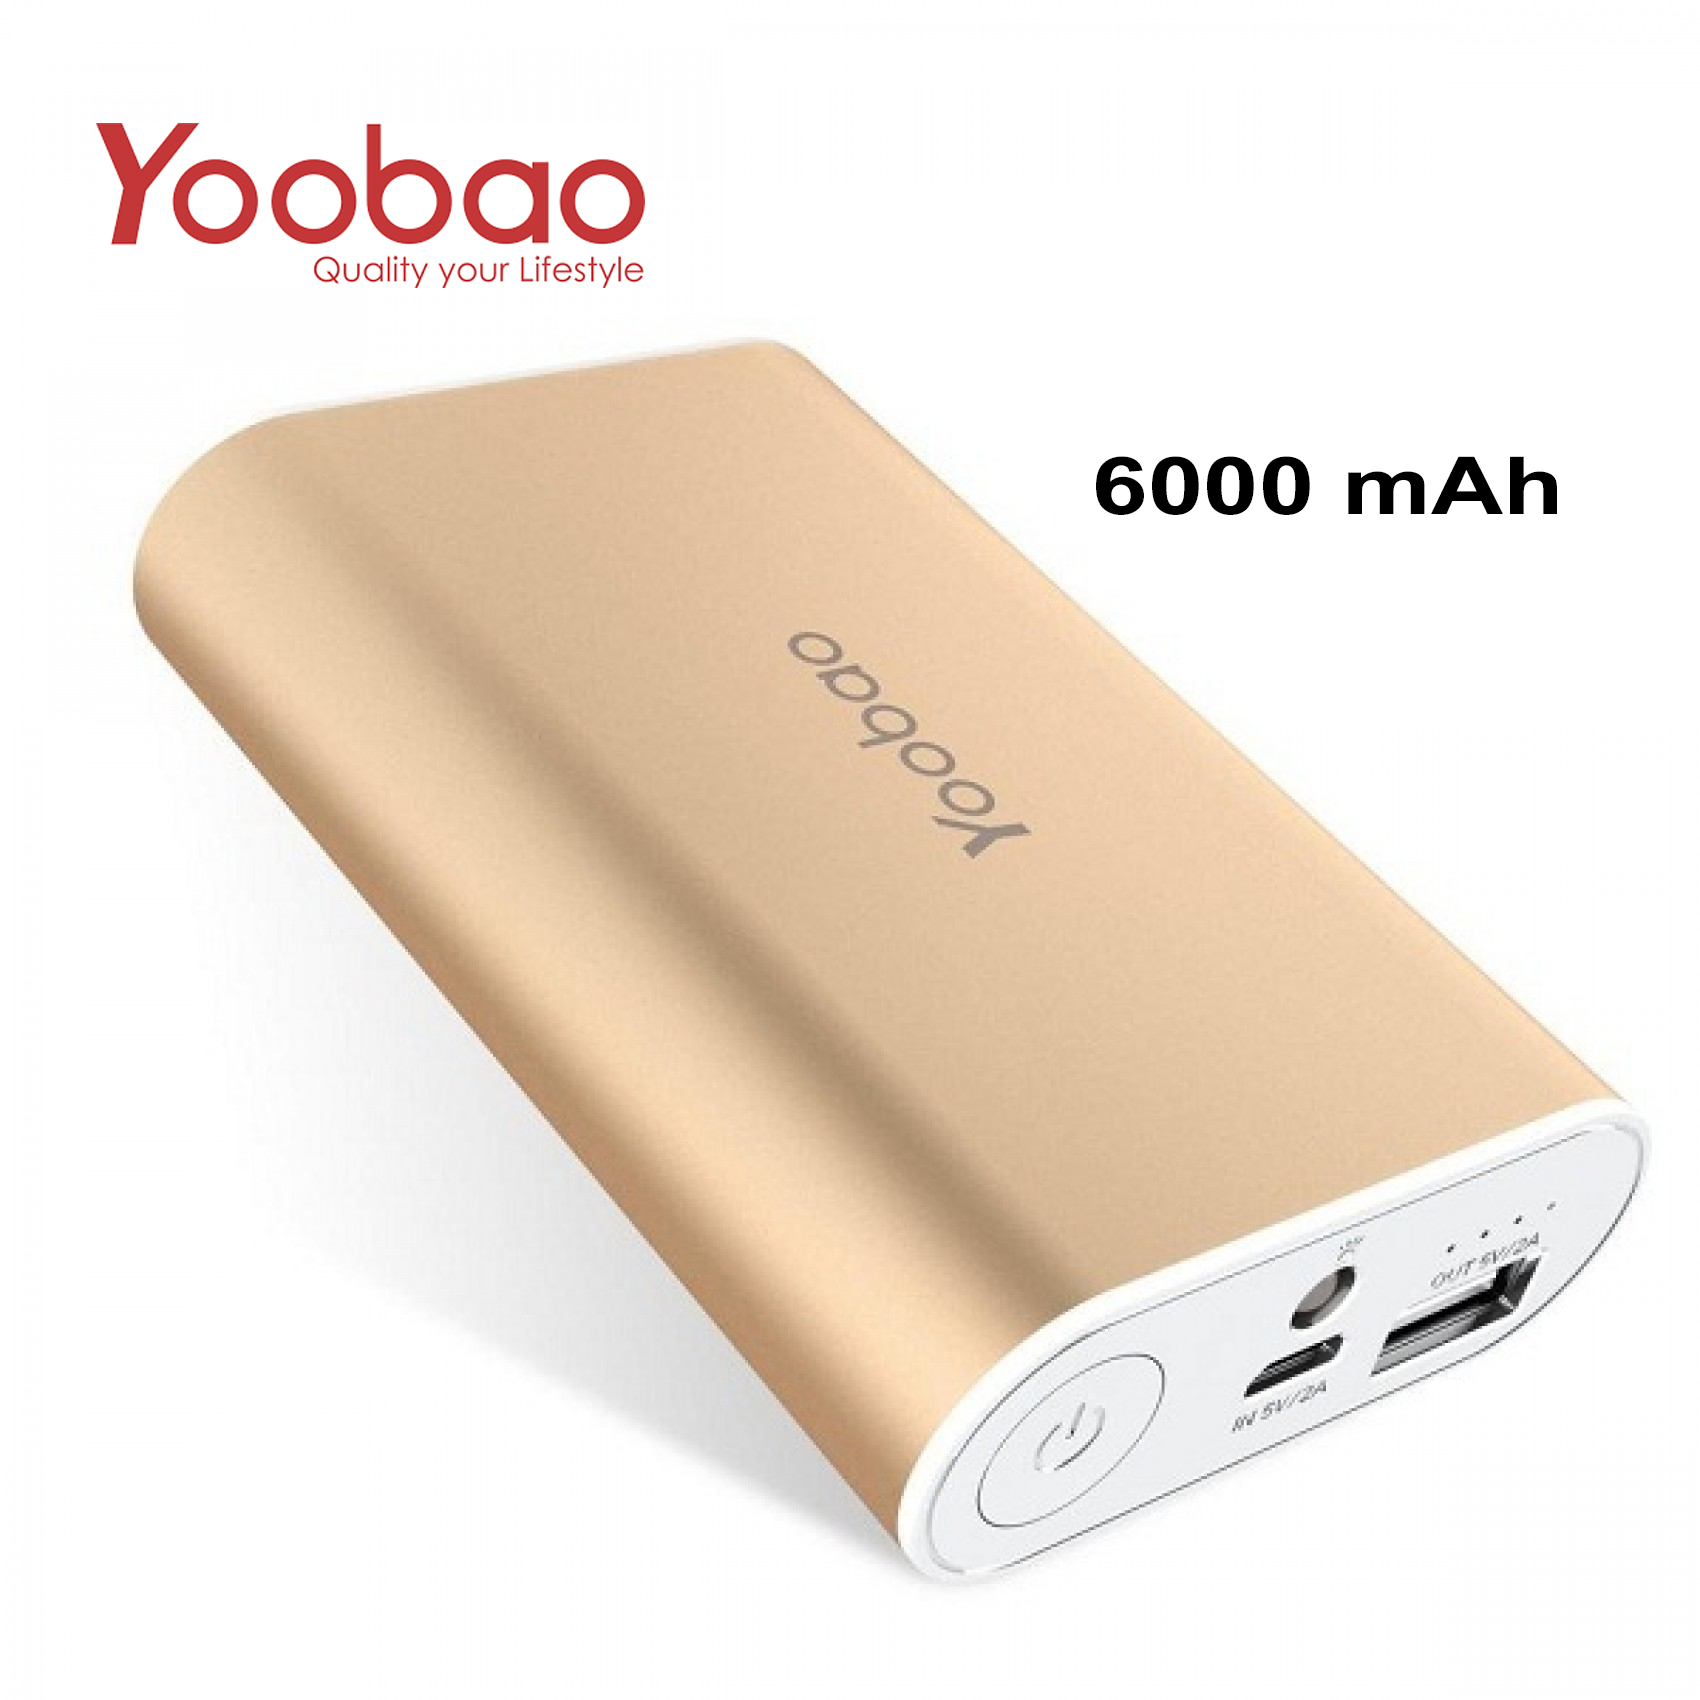 YOOBAO Intelligent Power Bank S3 6000mAh Portable Charger - Gold